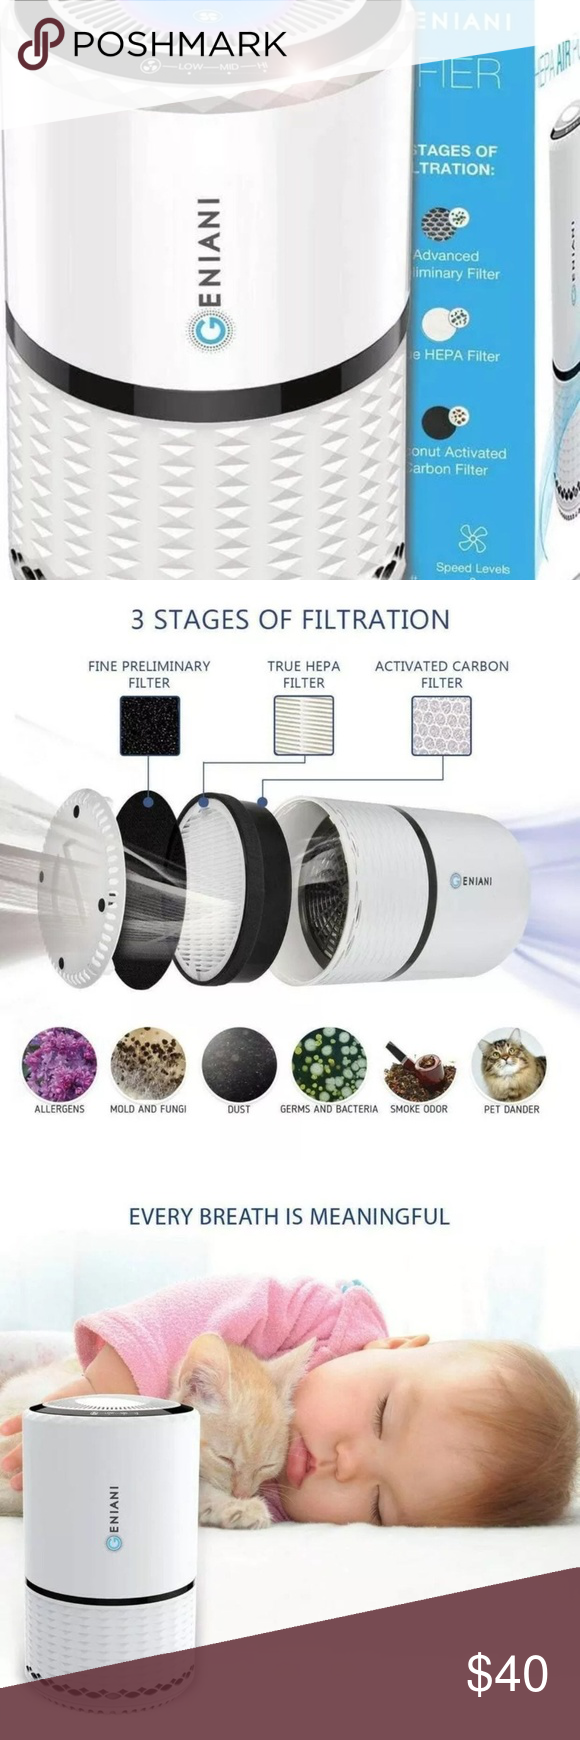 Air Purifier with True HEPA BRAND NEW BRAND NEW Air